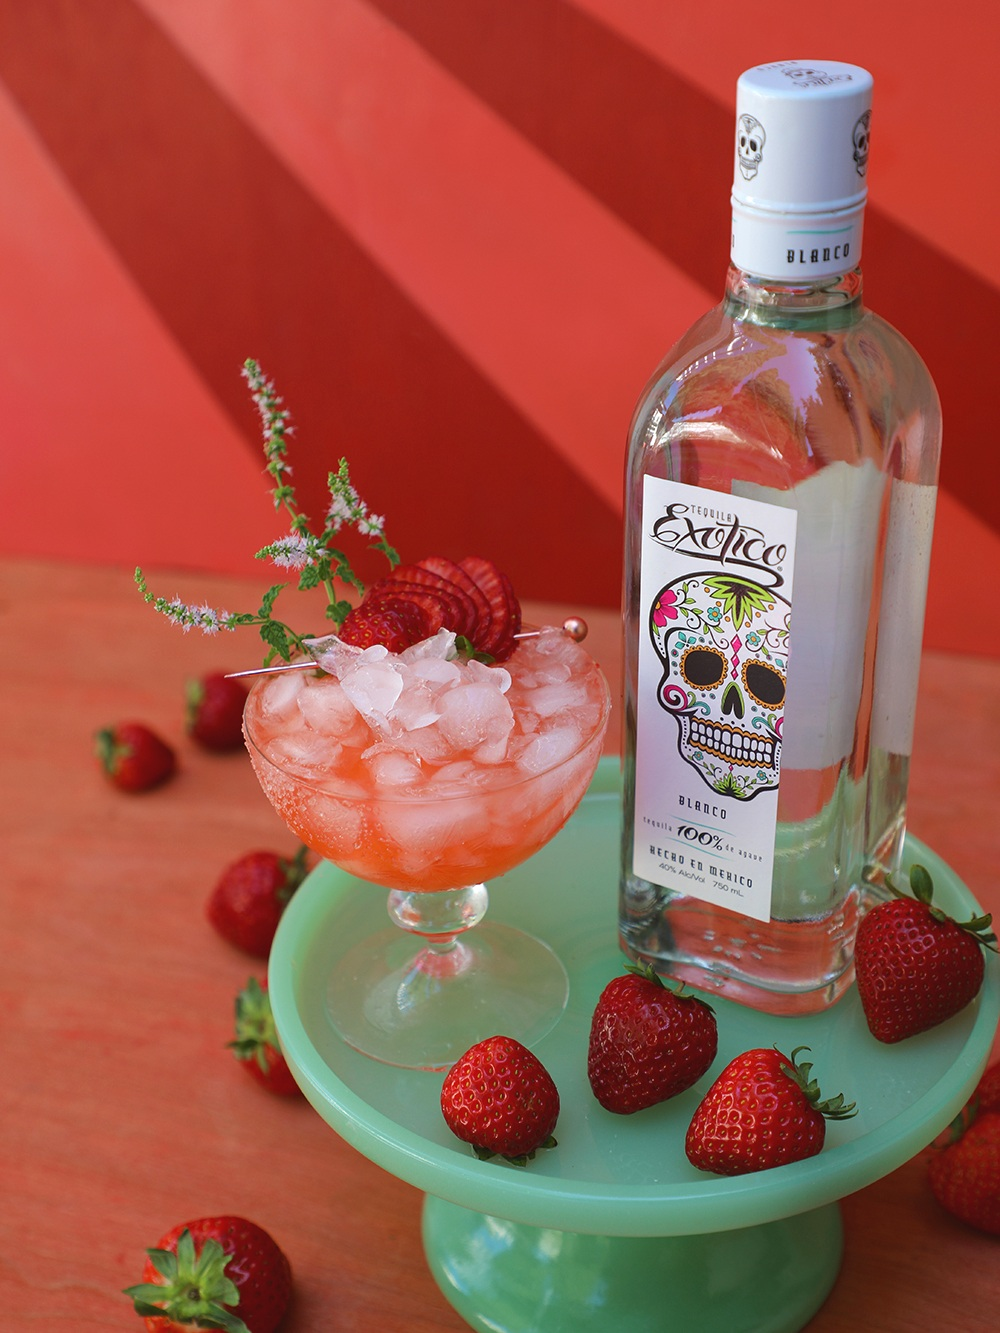 Strawberry Fields Forever Margarita made with fresh strawberry mint, strawberries, and Exotico Tequila Blanco | drinkingwithchickens.com